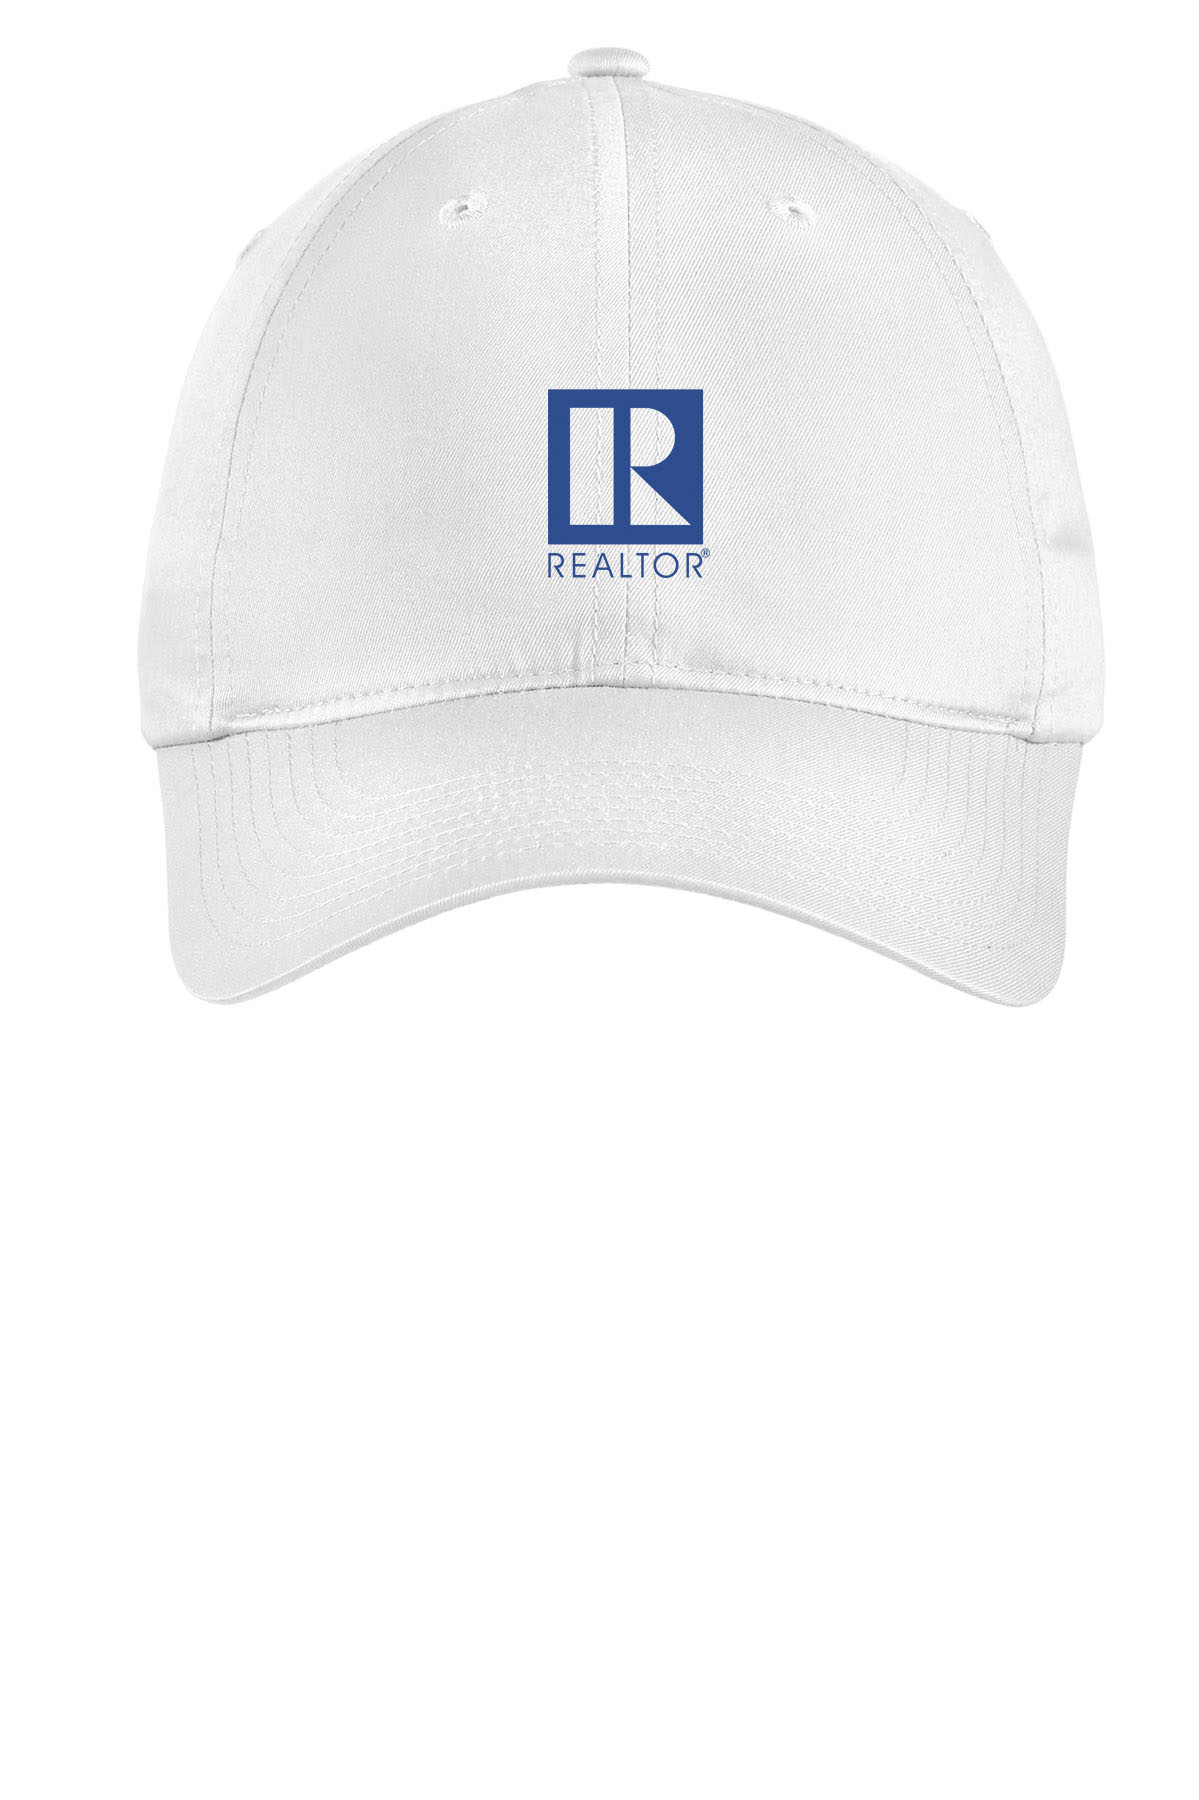 bc8db076df6 Nike Golf - Dri-FIT Swoosh Perforated Cap - RCG3200 ...